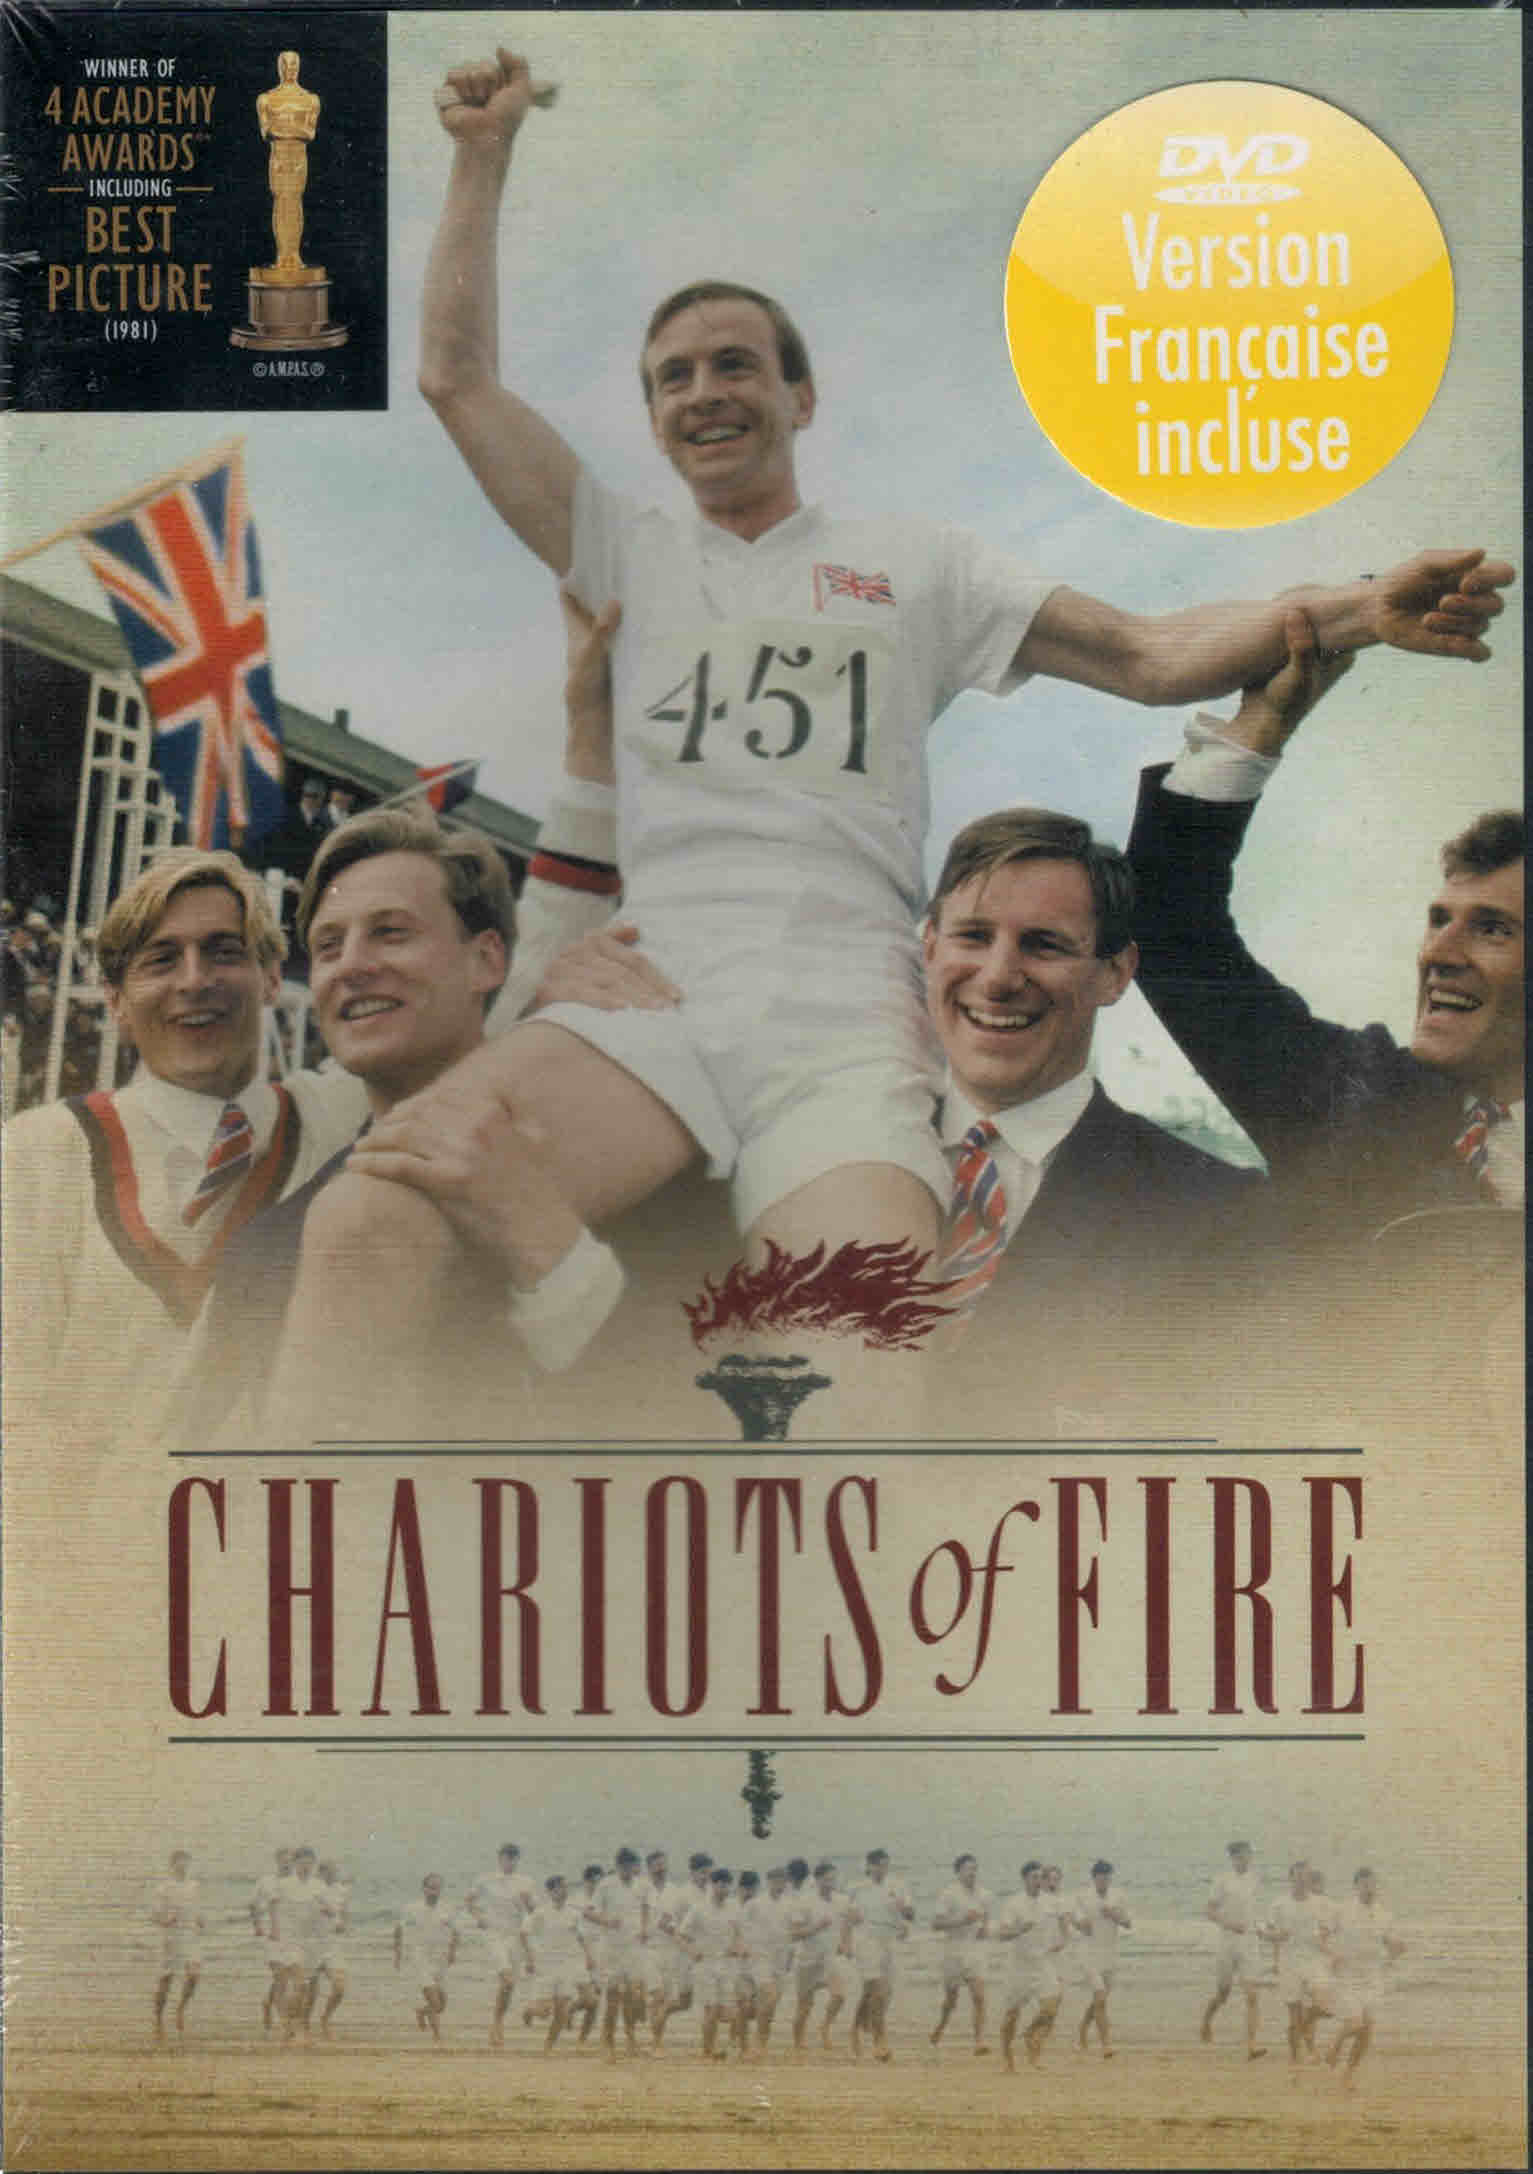 DVD Chariots of Fire